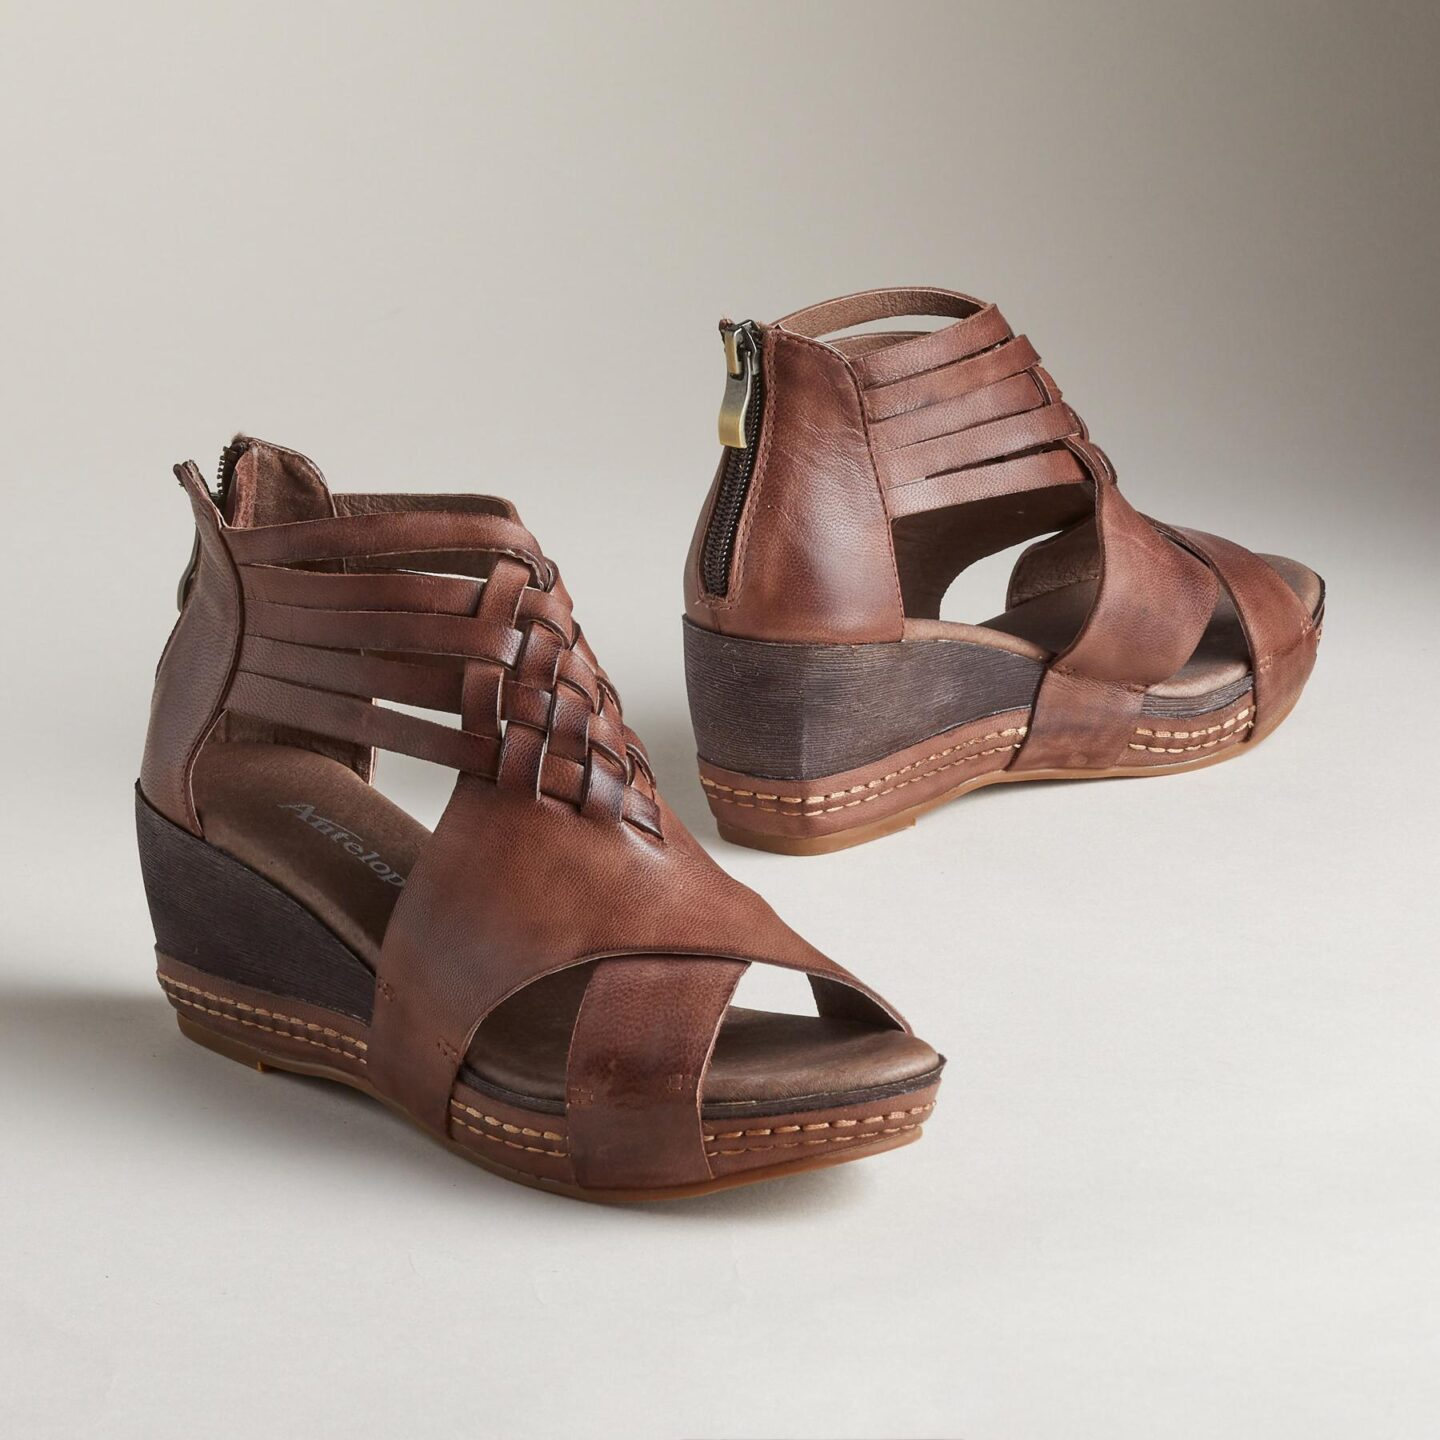 Rowena sandals from Sundance